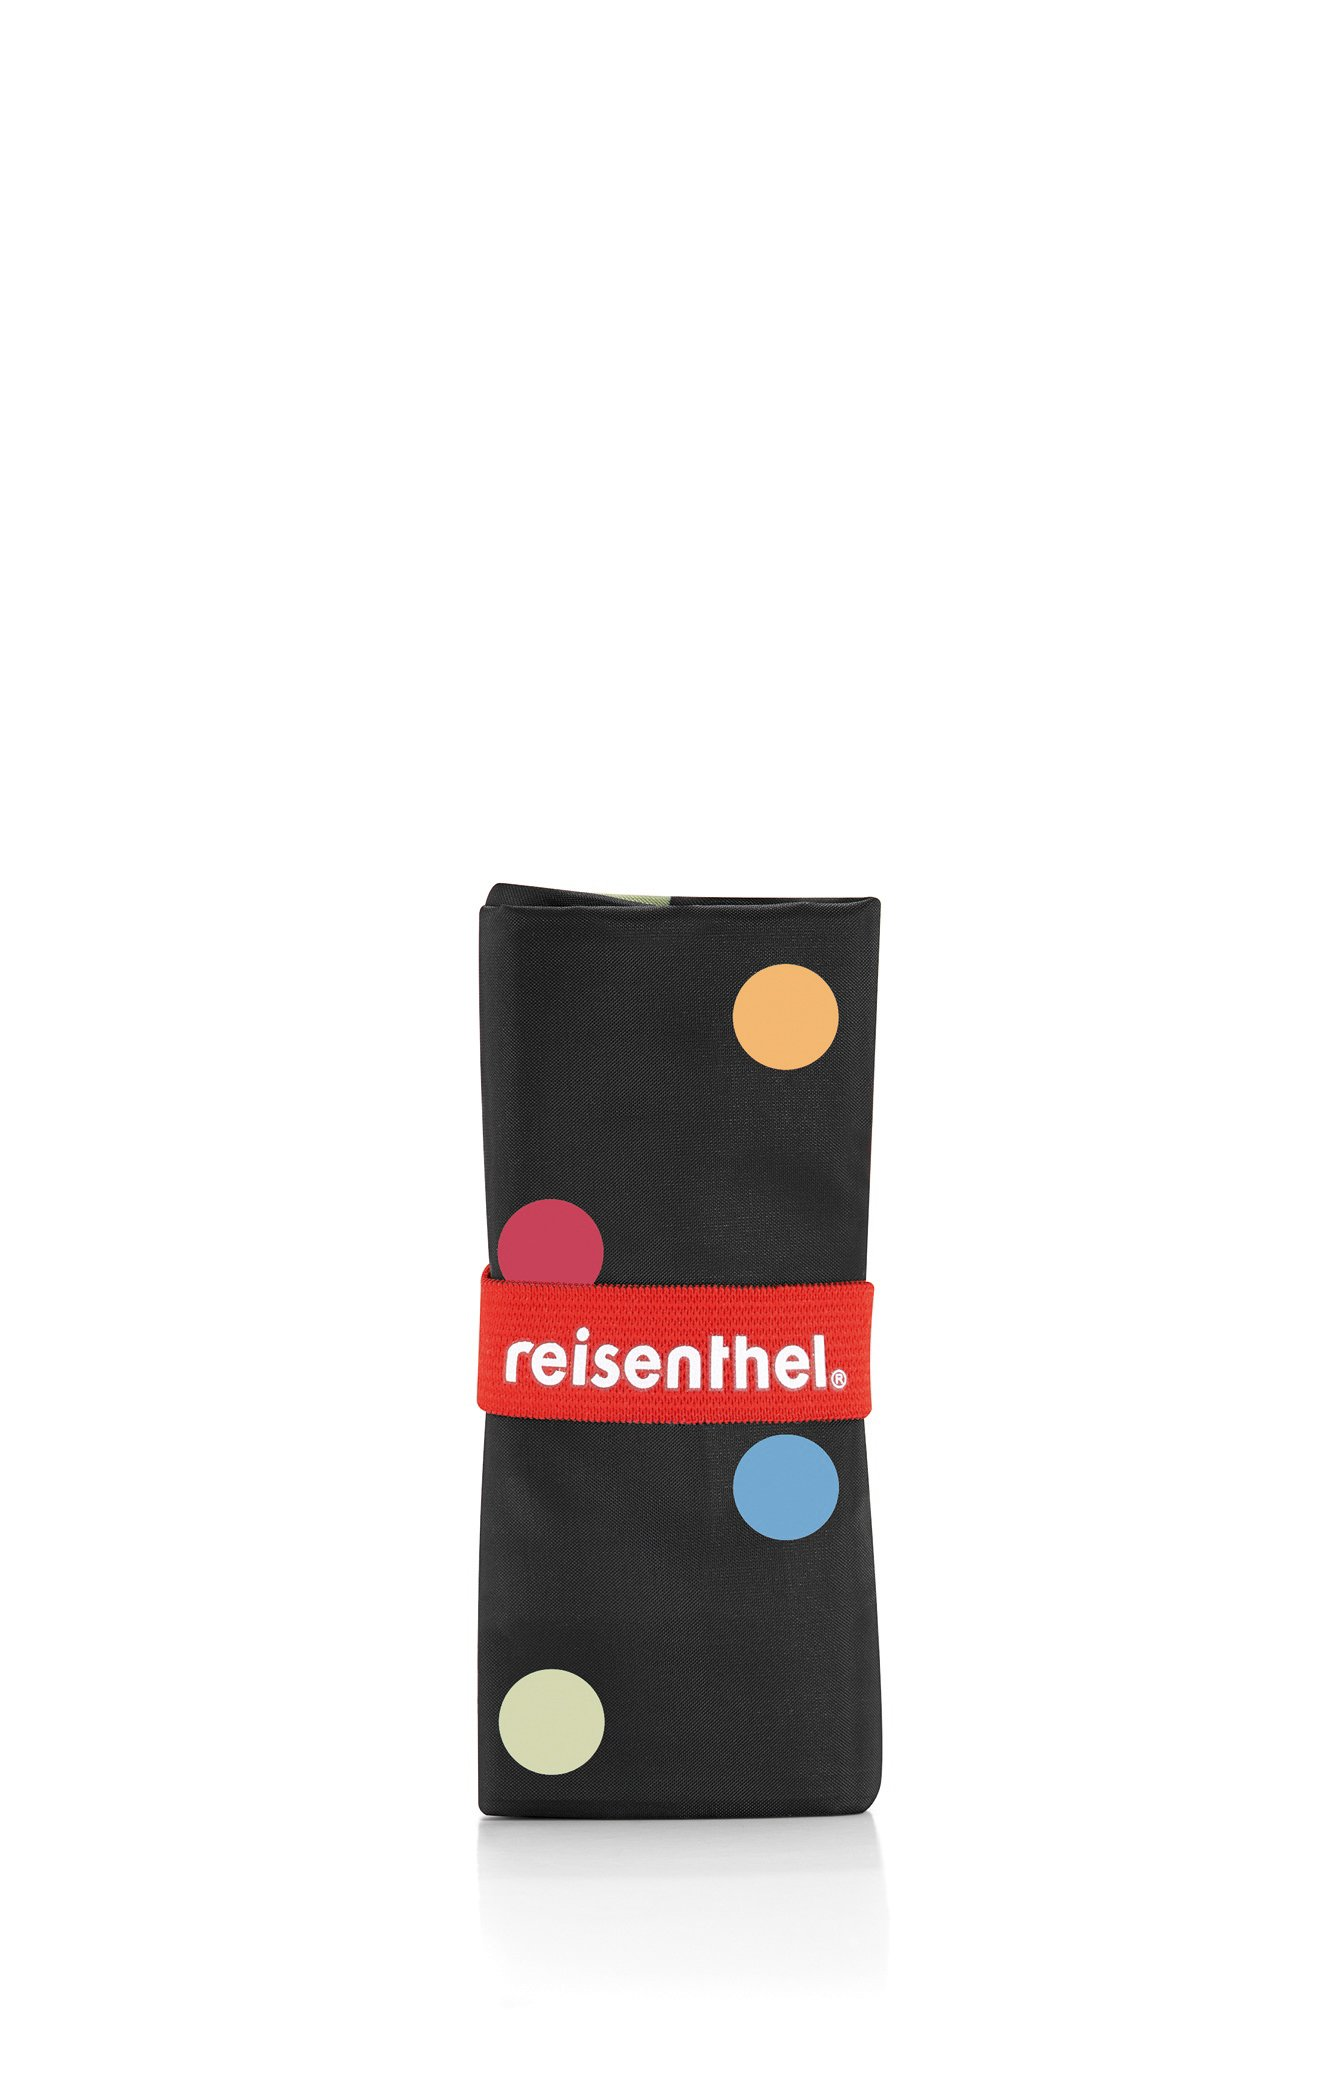 reisenthel Mini Maxi Shopper, Foldable Reusable Shopping Tote with Elastic Band, Dots by reisenthel (Image #3)